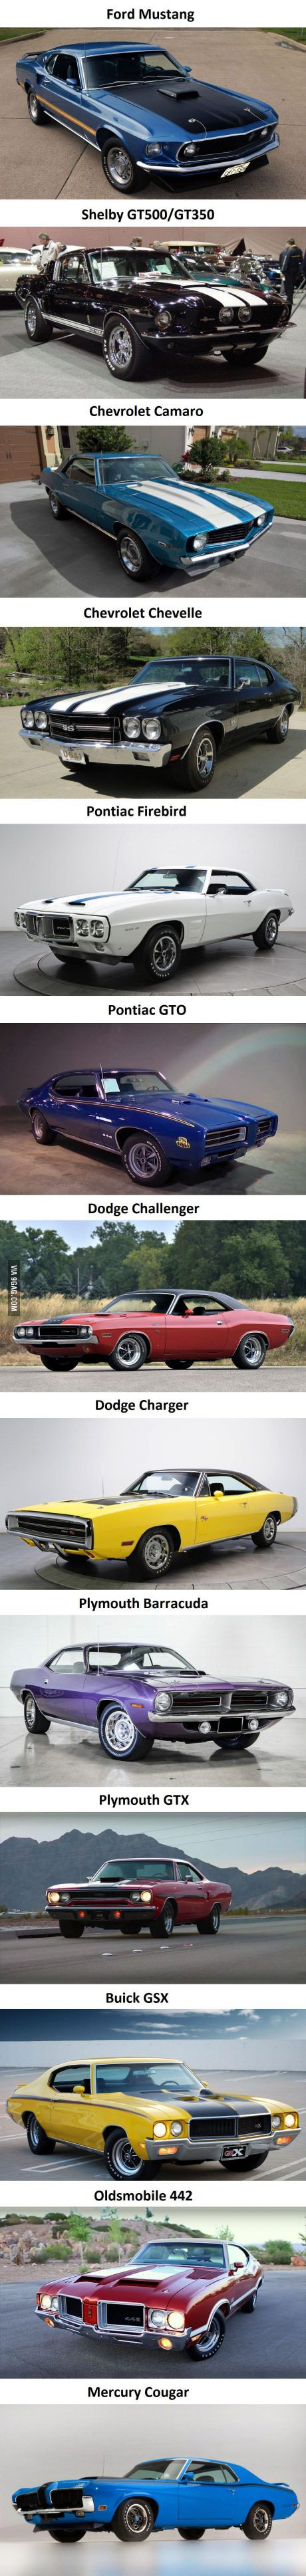 165 best Cuda owner images on Pinterest | Mopar, American muscle ...